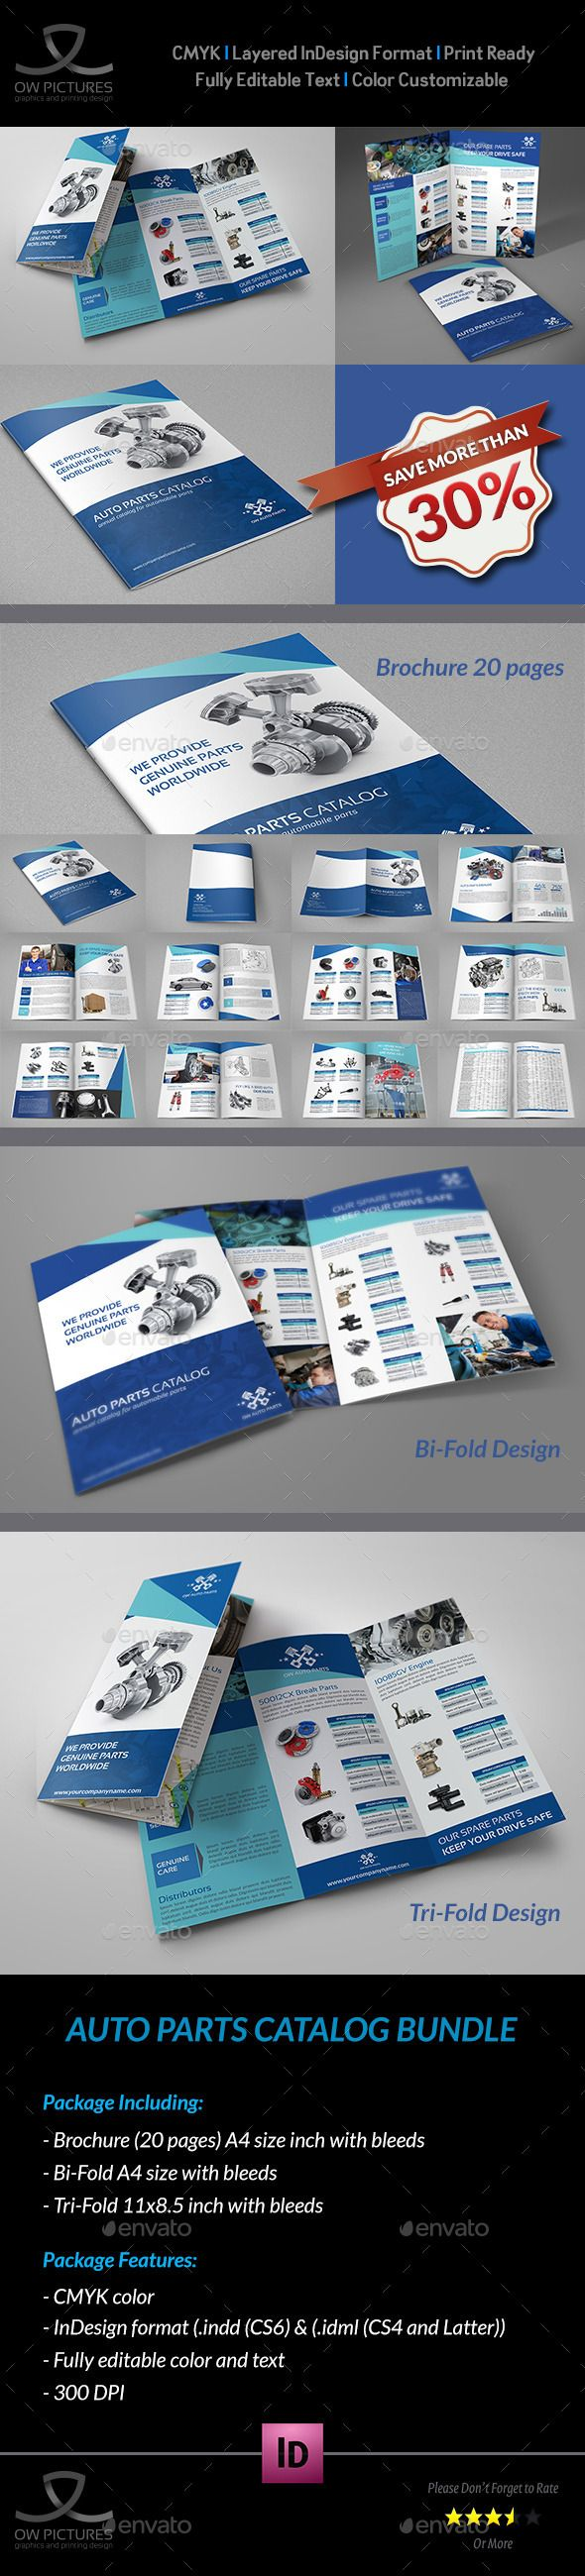 Auto Parts Catalog Brochure Bundle Template PSD #design Download: http://graphicriver.net/item/auto-parts-catalog-brochure-bundle-template/13646105?ref=ksioks